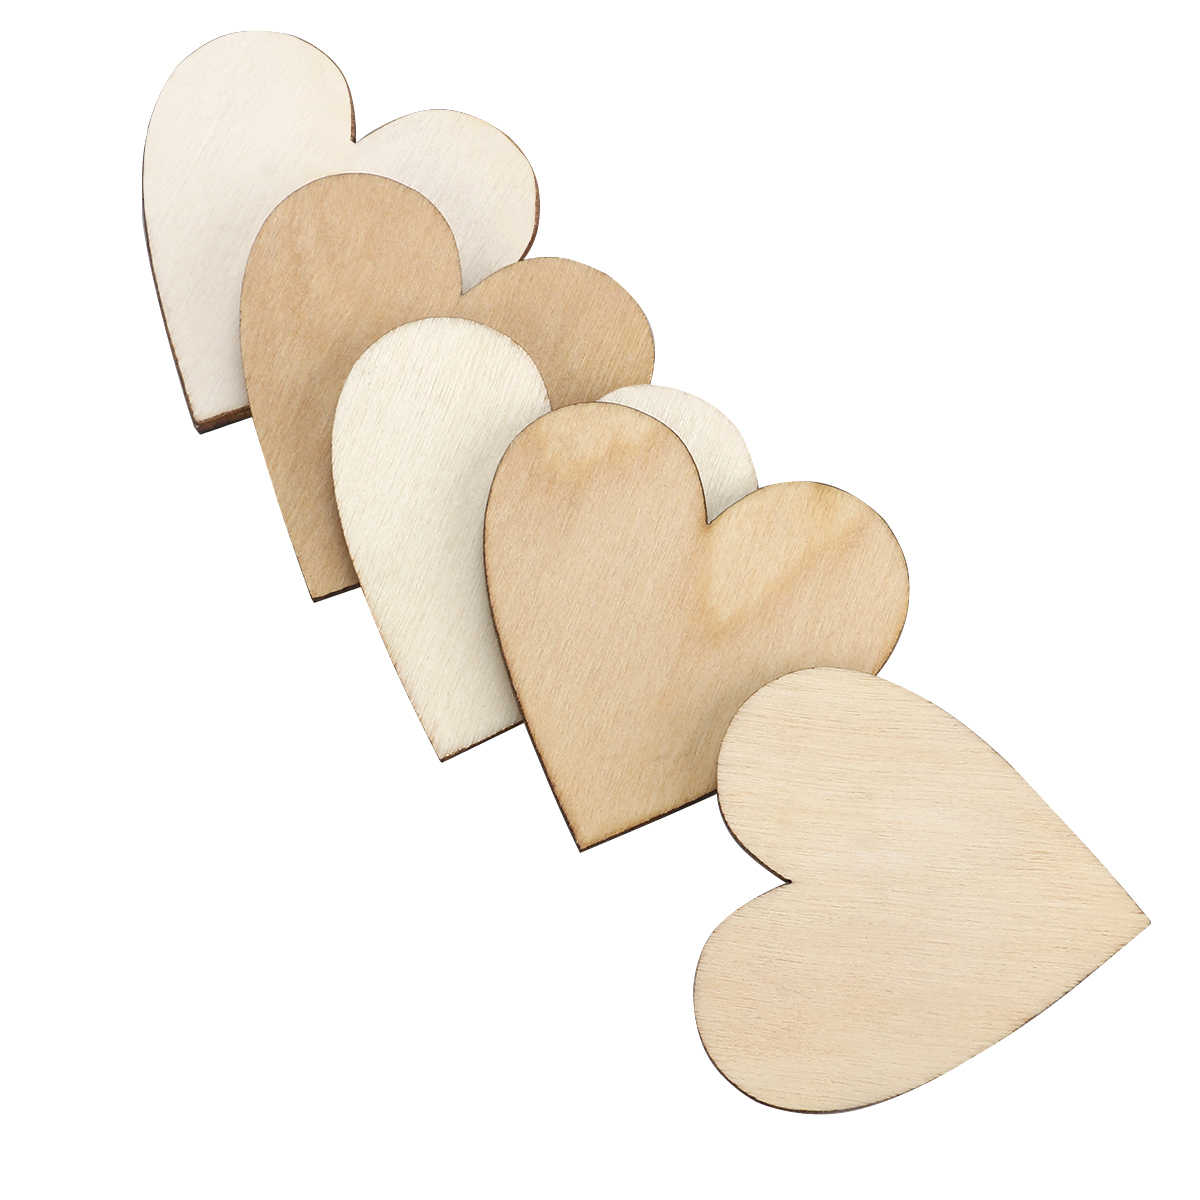 50pcs 40mm Wooden Heart Shaped Log Slices For DIY Crafts Wedding Home Decorations Wall Stickers (Wood Color)